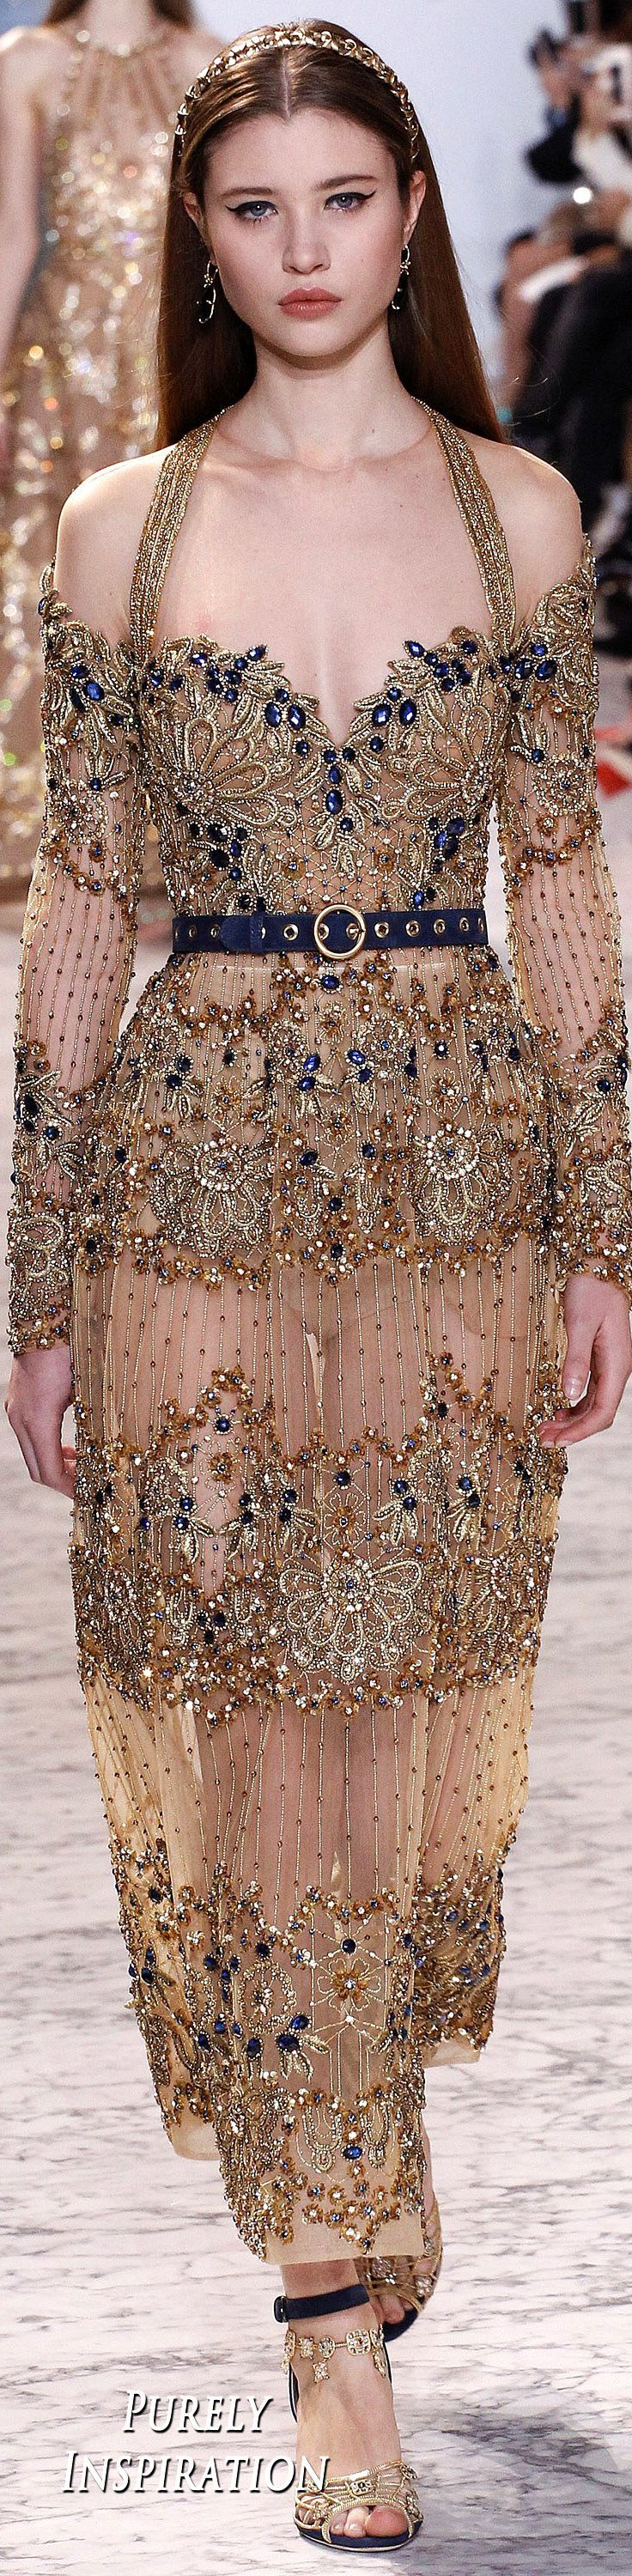 Elie Saab 2017 Spring Haute Couture Womens Fashion | Purely Inspiration